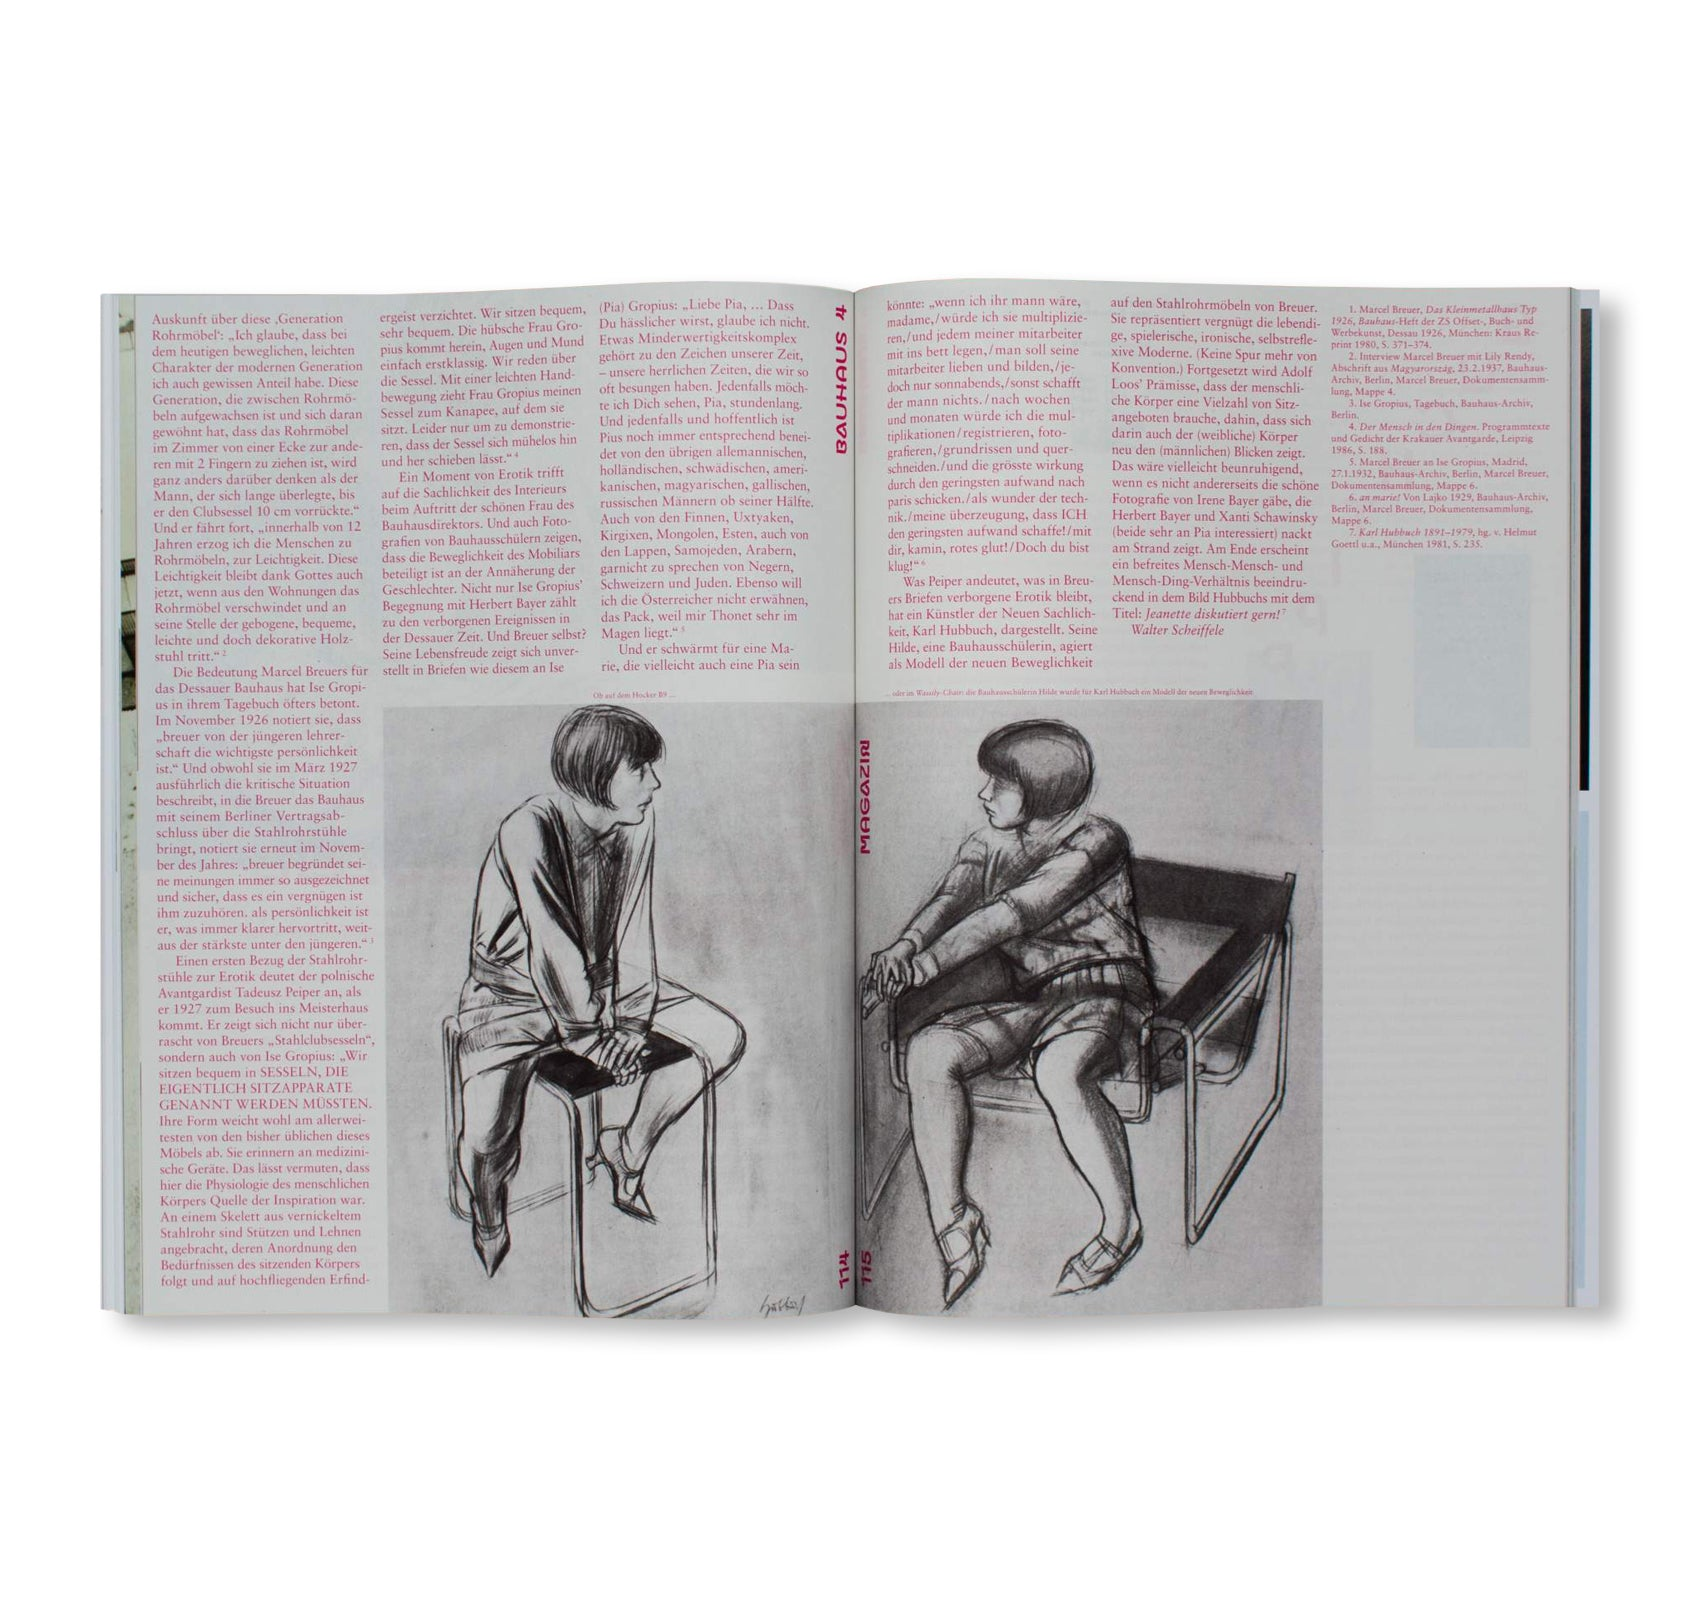 PHOTO - BAUHAUS 4. The Bauhaus Dessau Foundation's Magazine by Stiftung Bauhaus Dessau